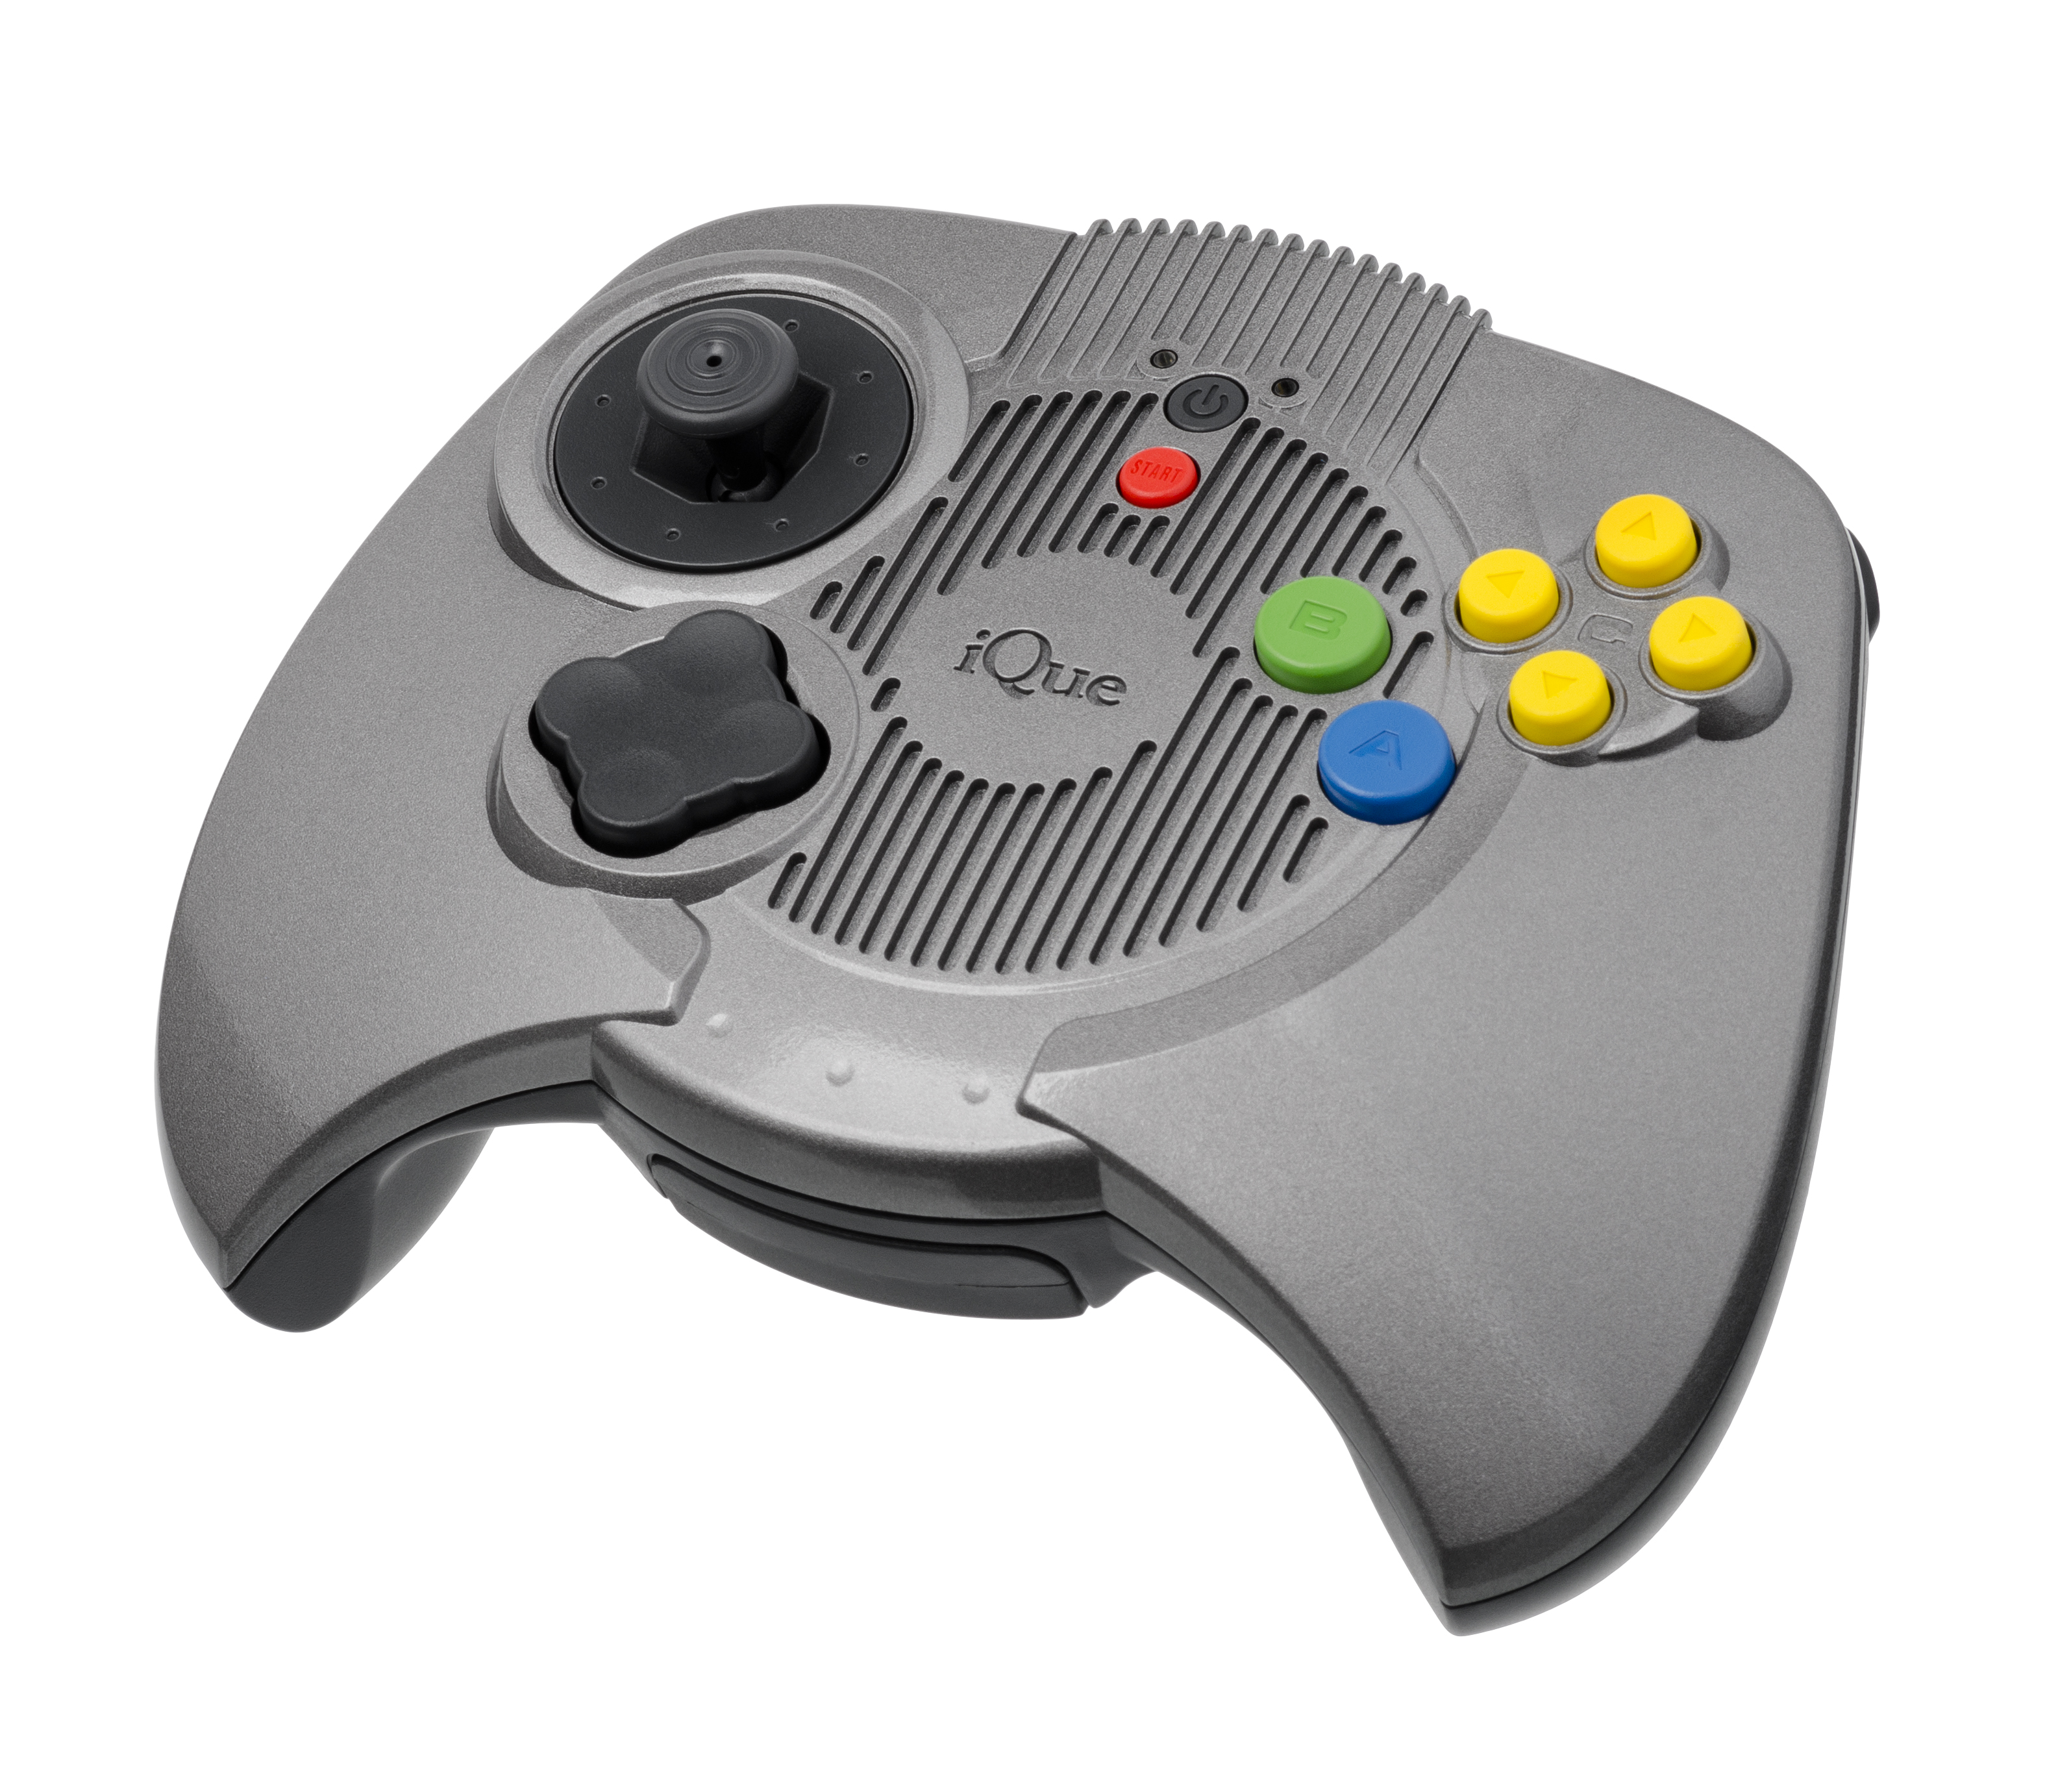 iQue Player - Wikipedia